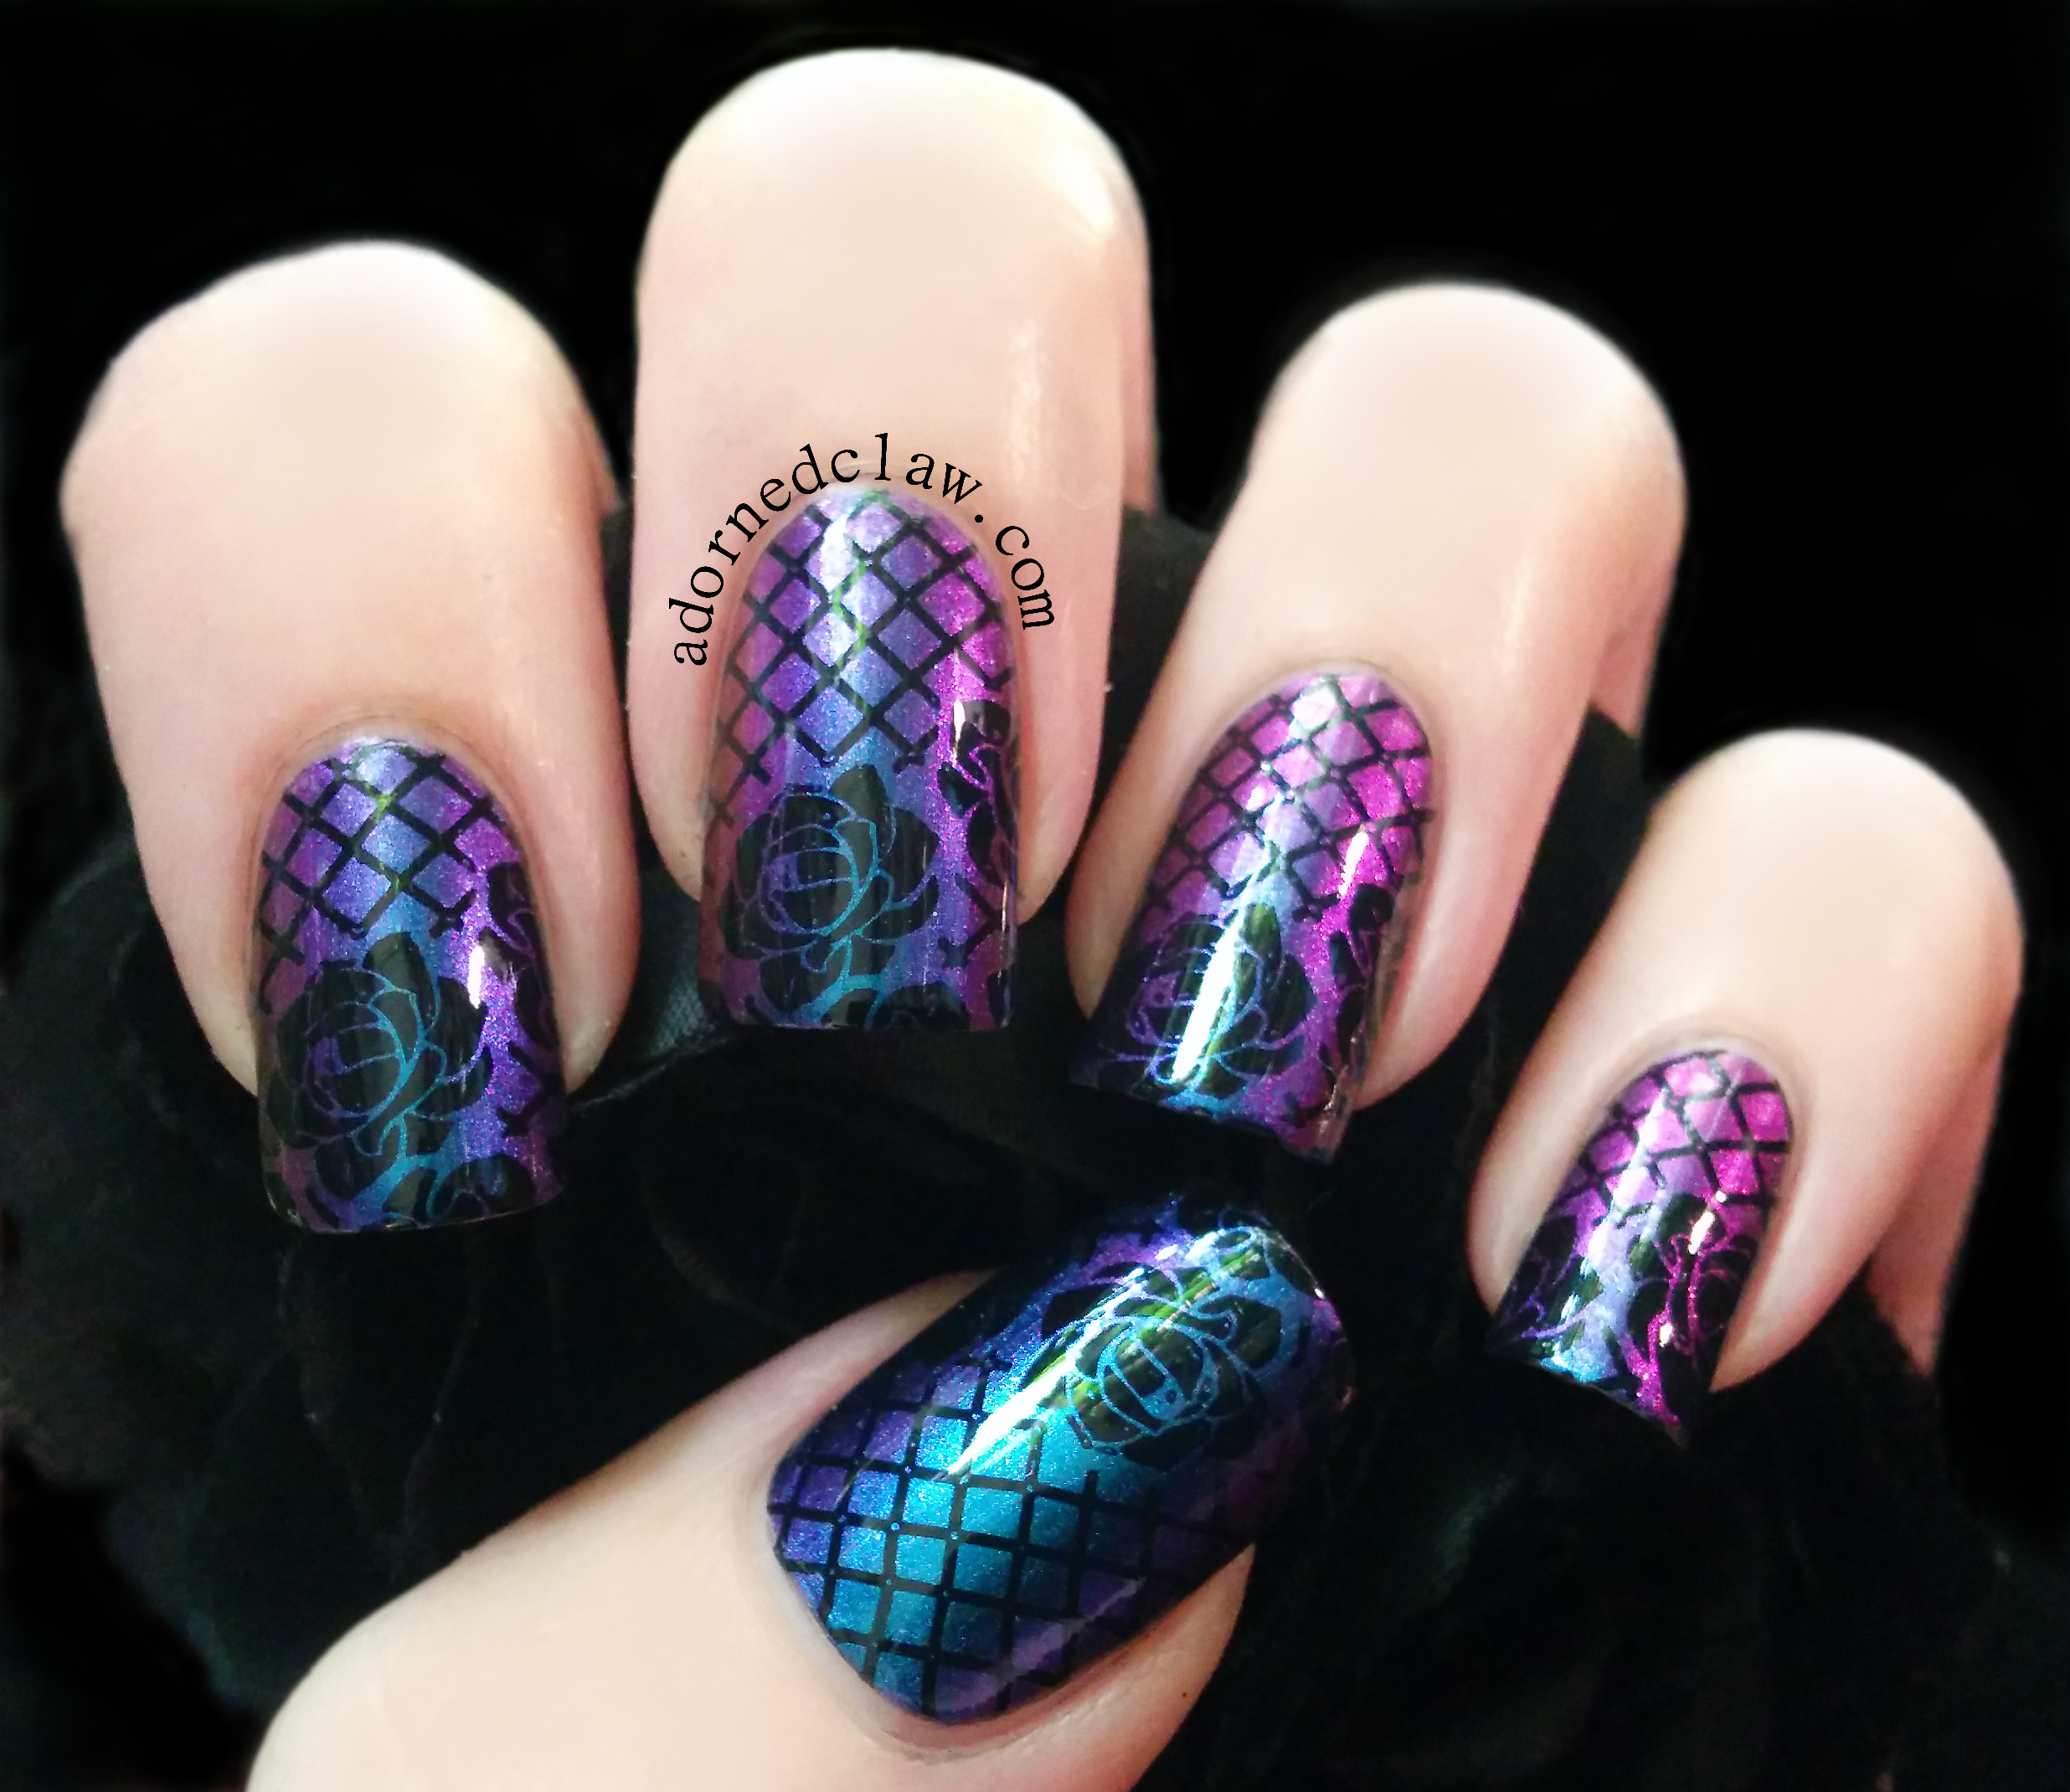 Ilnp Birefringence With Moyou Gothic 03 The Adorned Claw